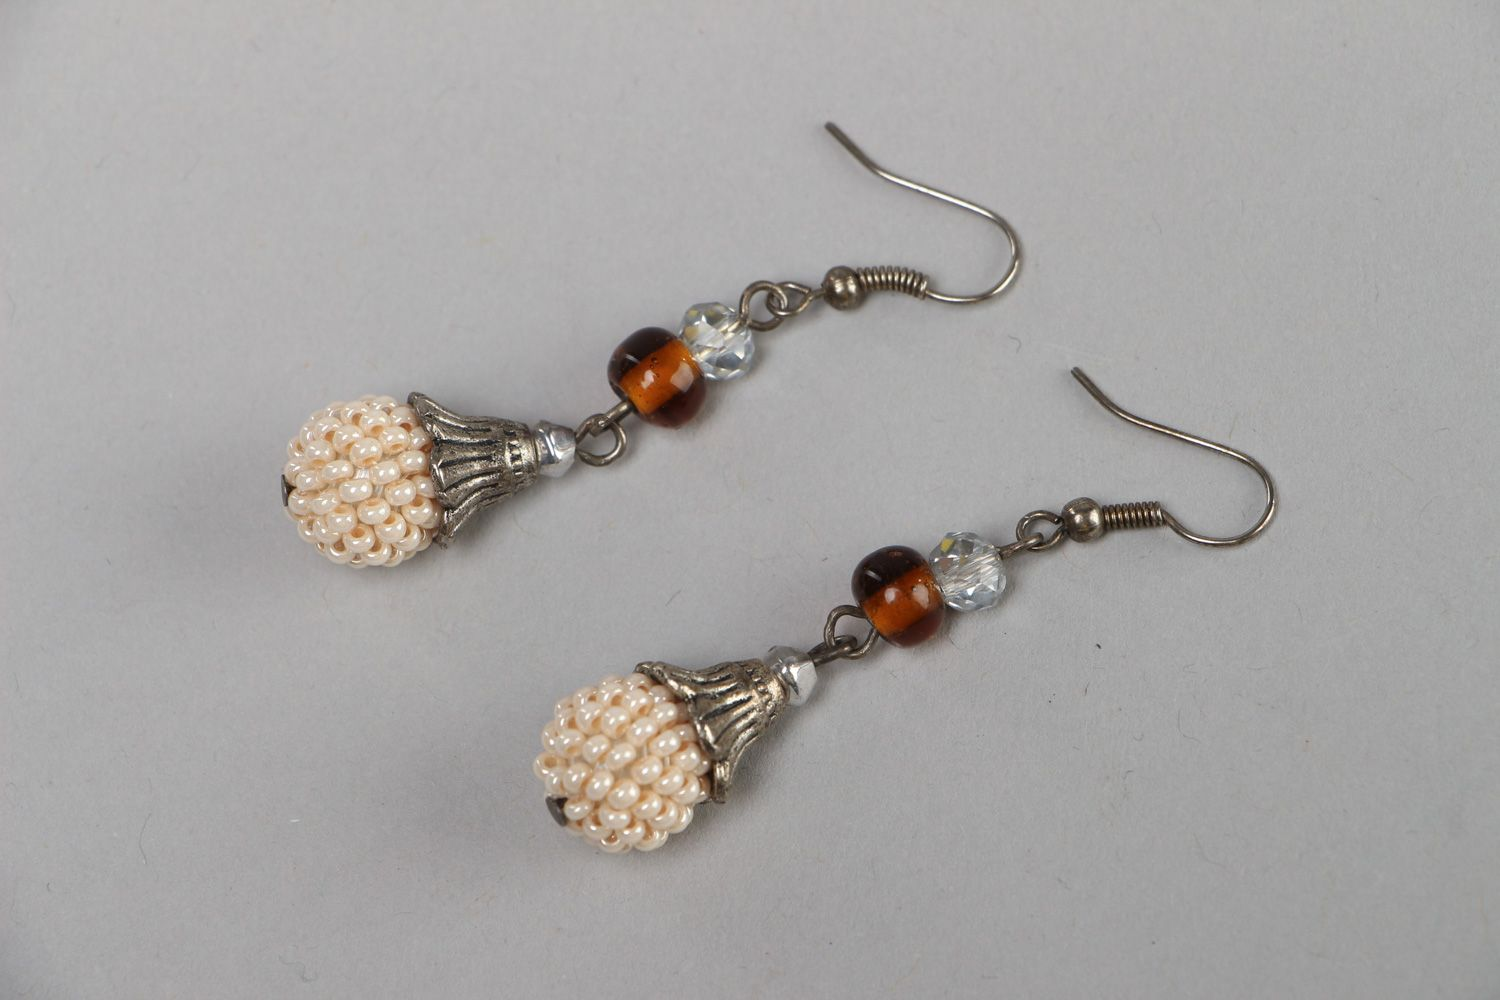 Handmade festive dangle earrings with Czech and glass beads in light color palette photo 1